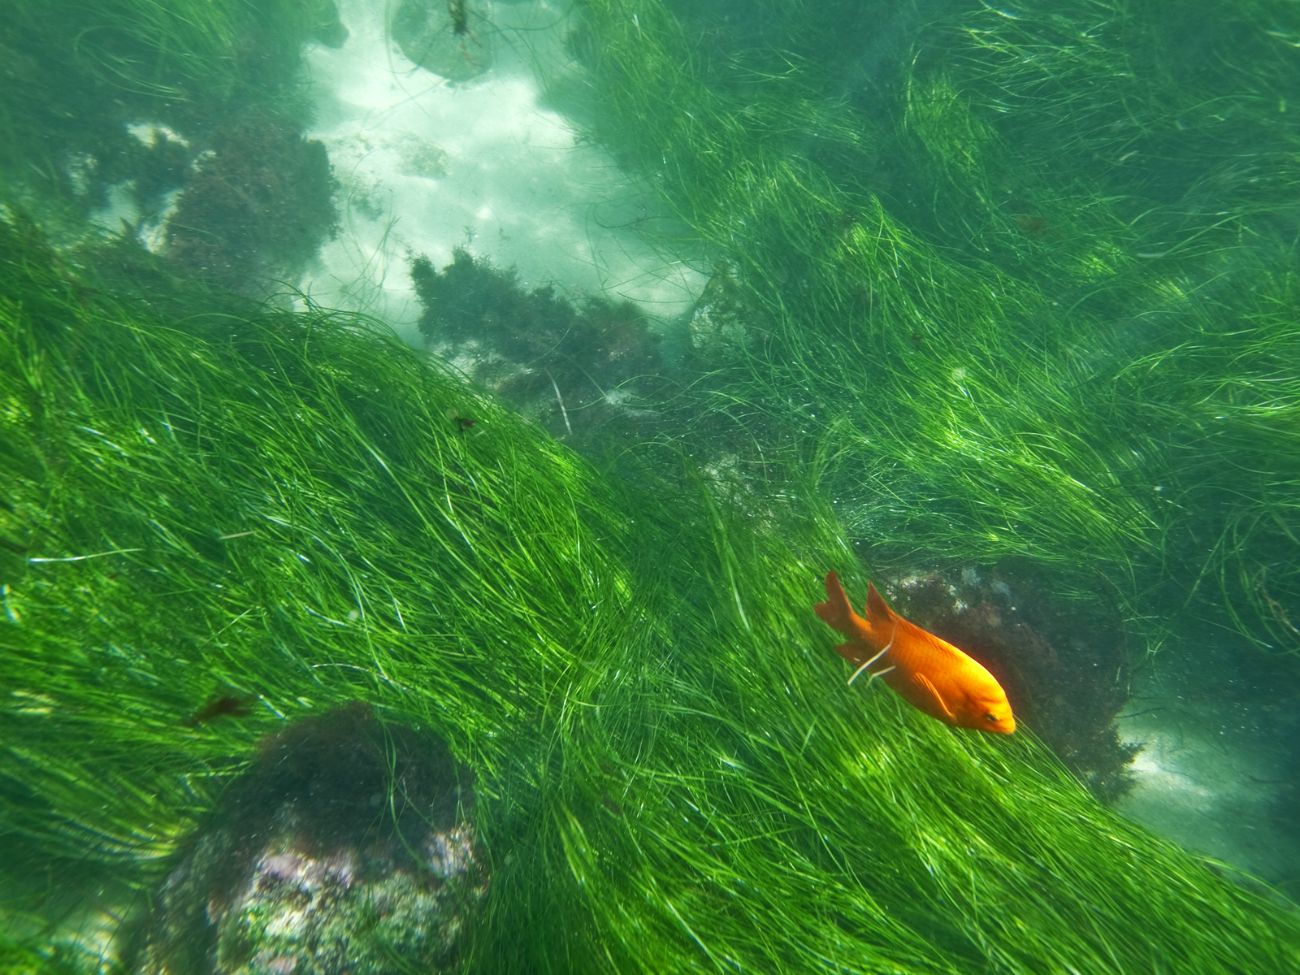 When in San Diego, you must explore La Jolla's Underwater Park ecological reserve. Here's why.